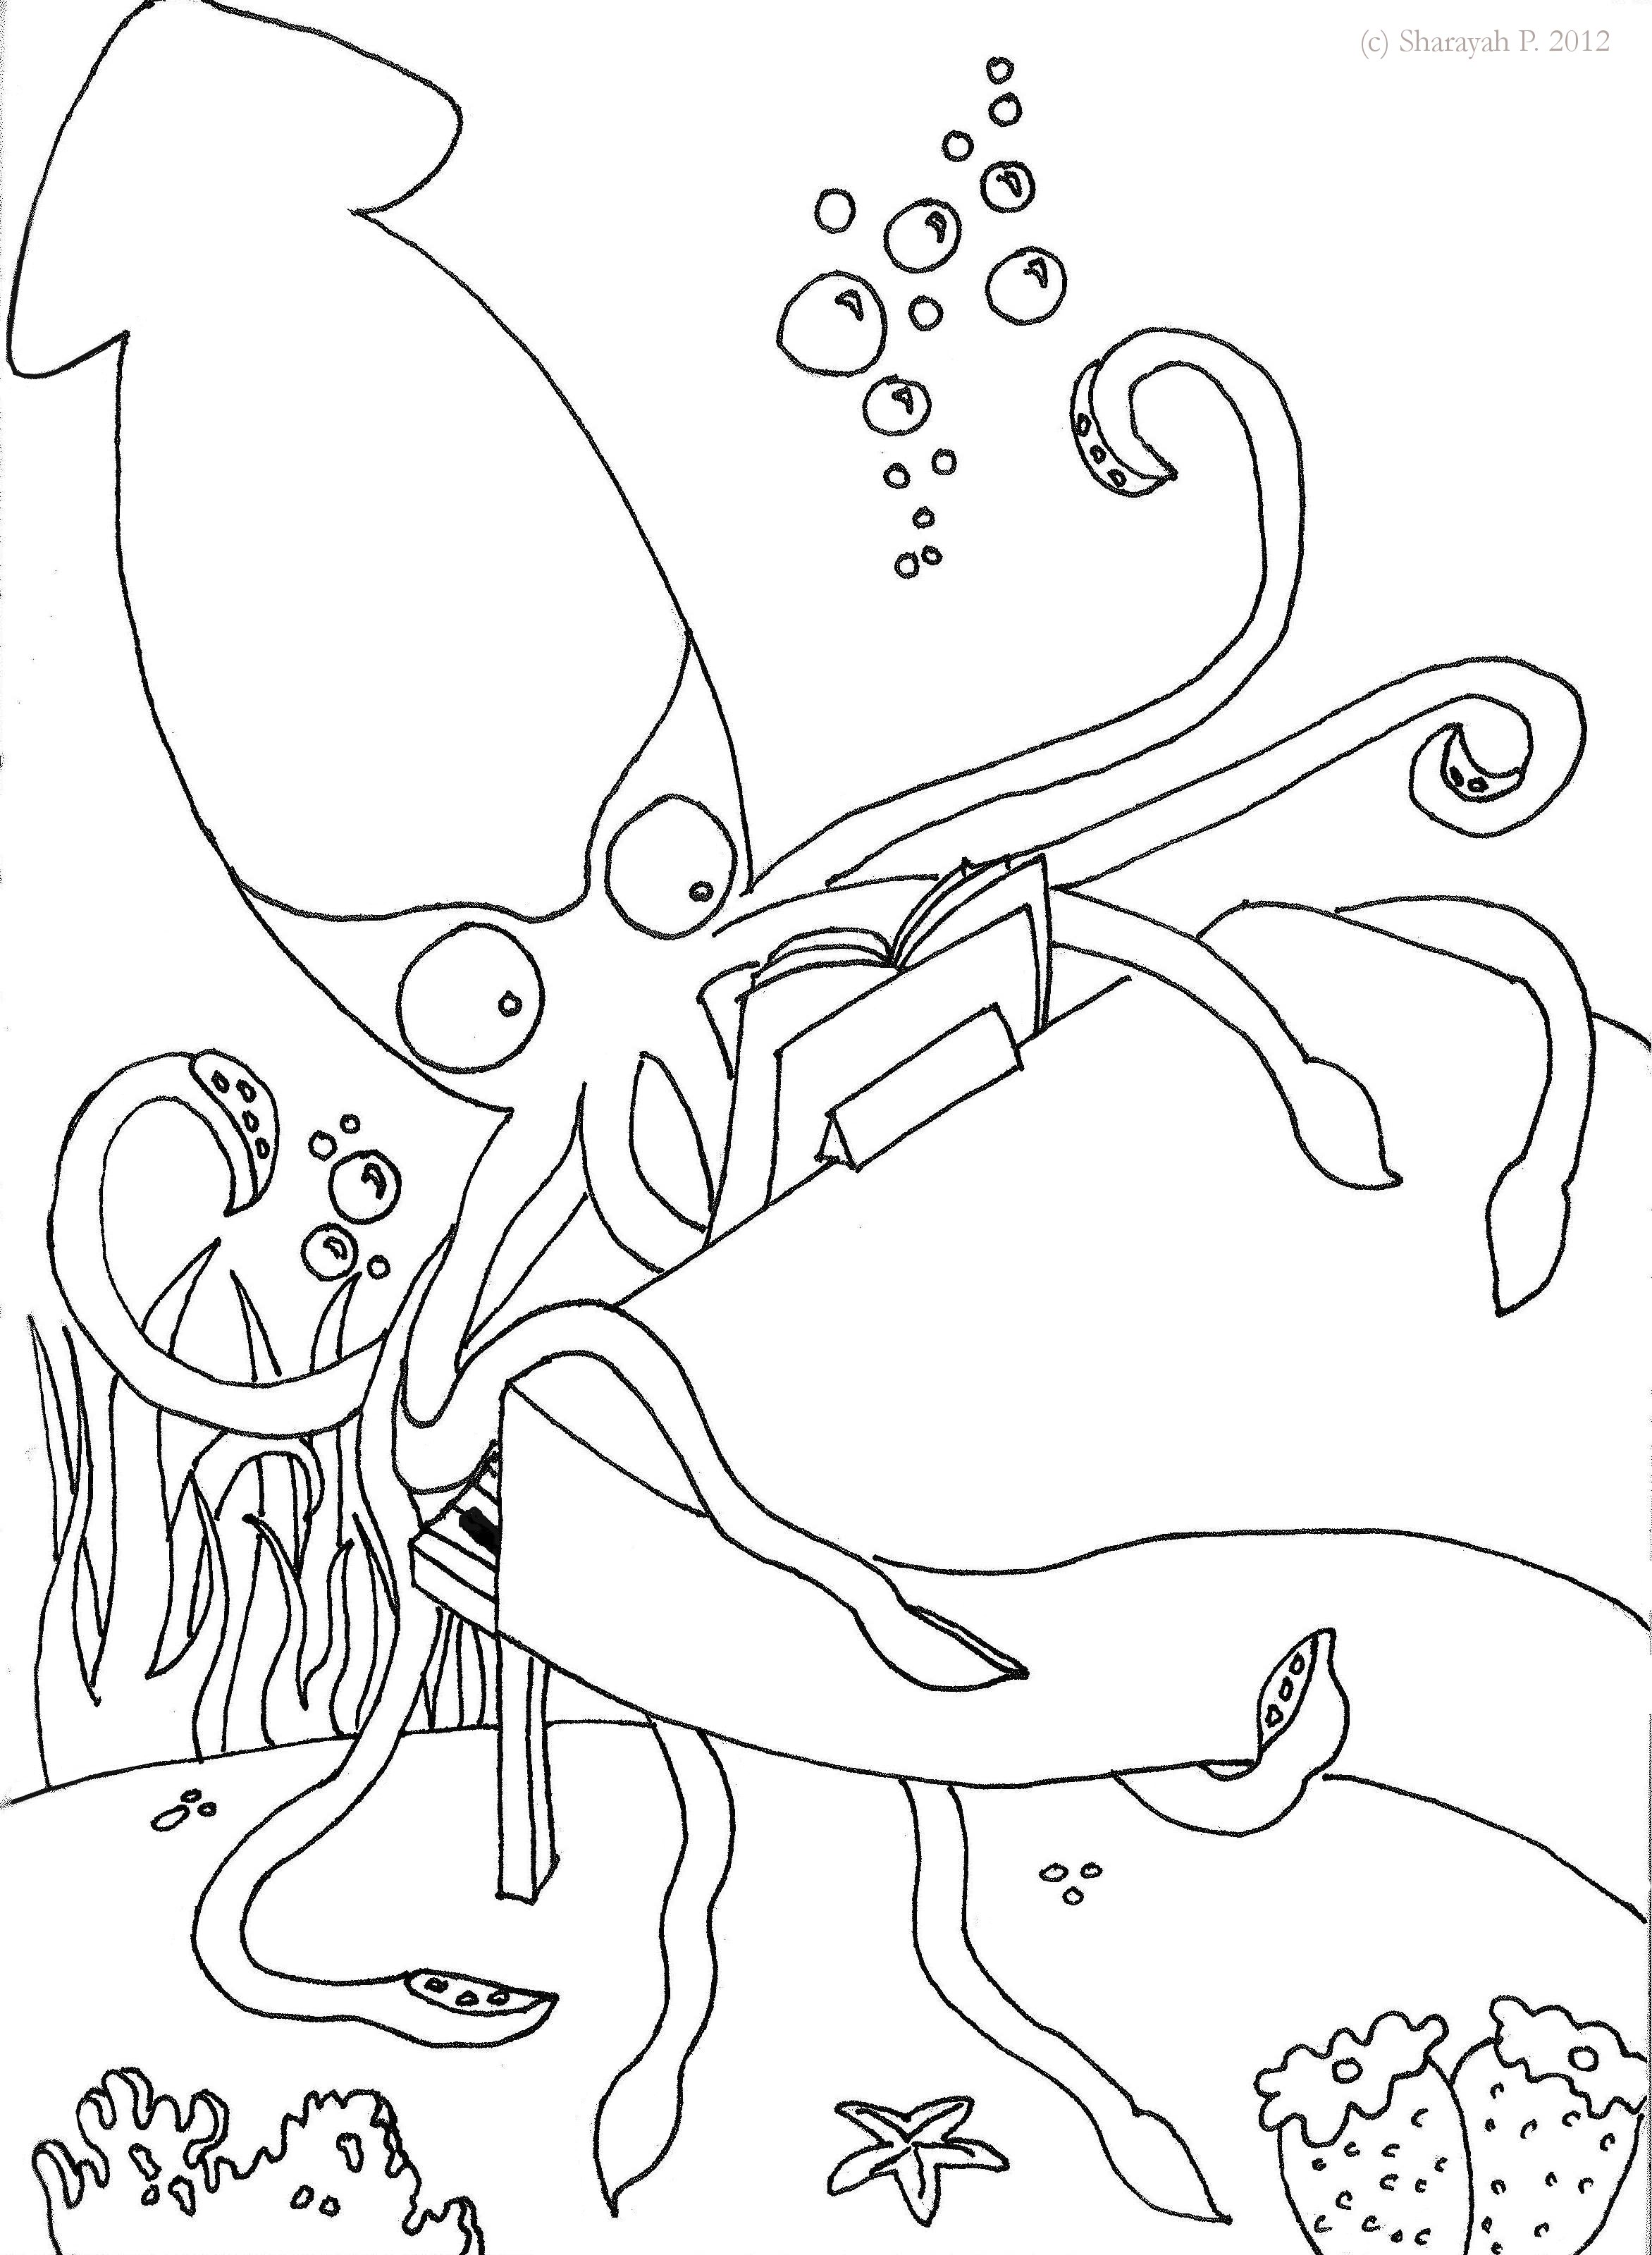 12226 Vampire Squid C2016 School Zone How To Draw Anime Punk